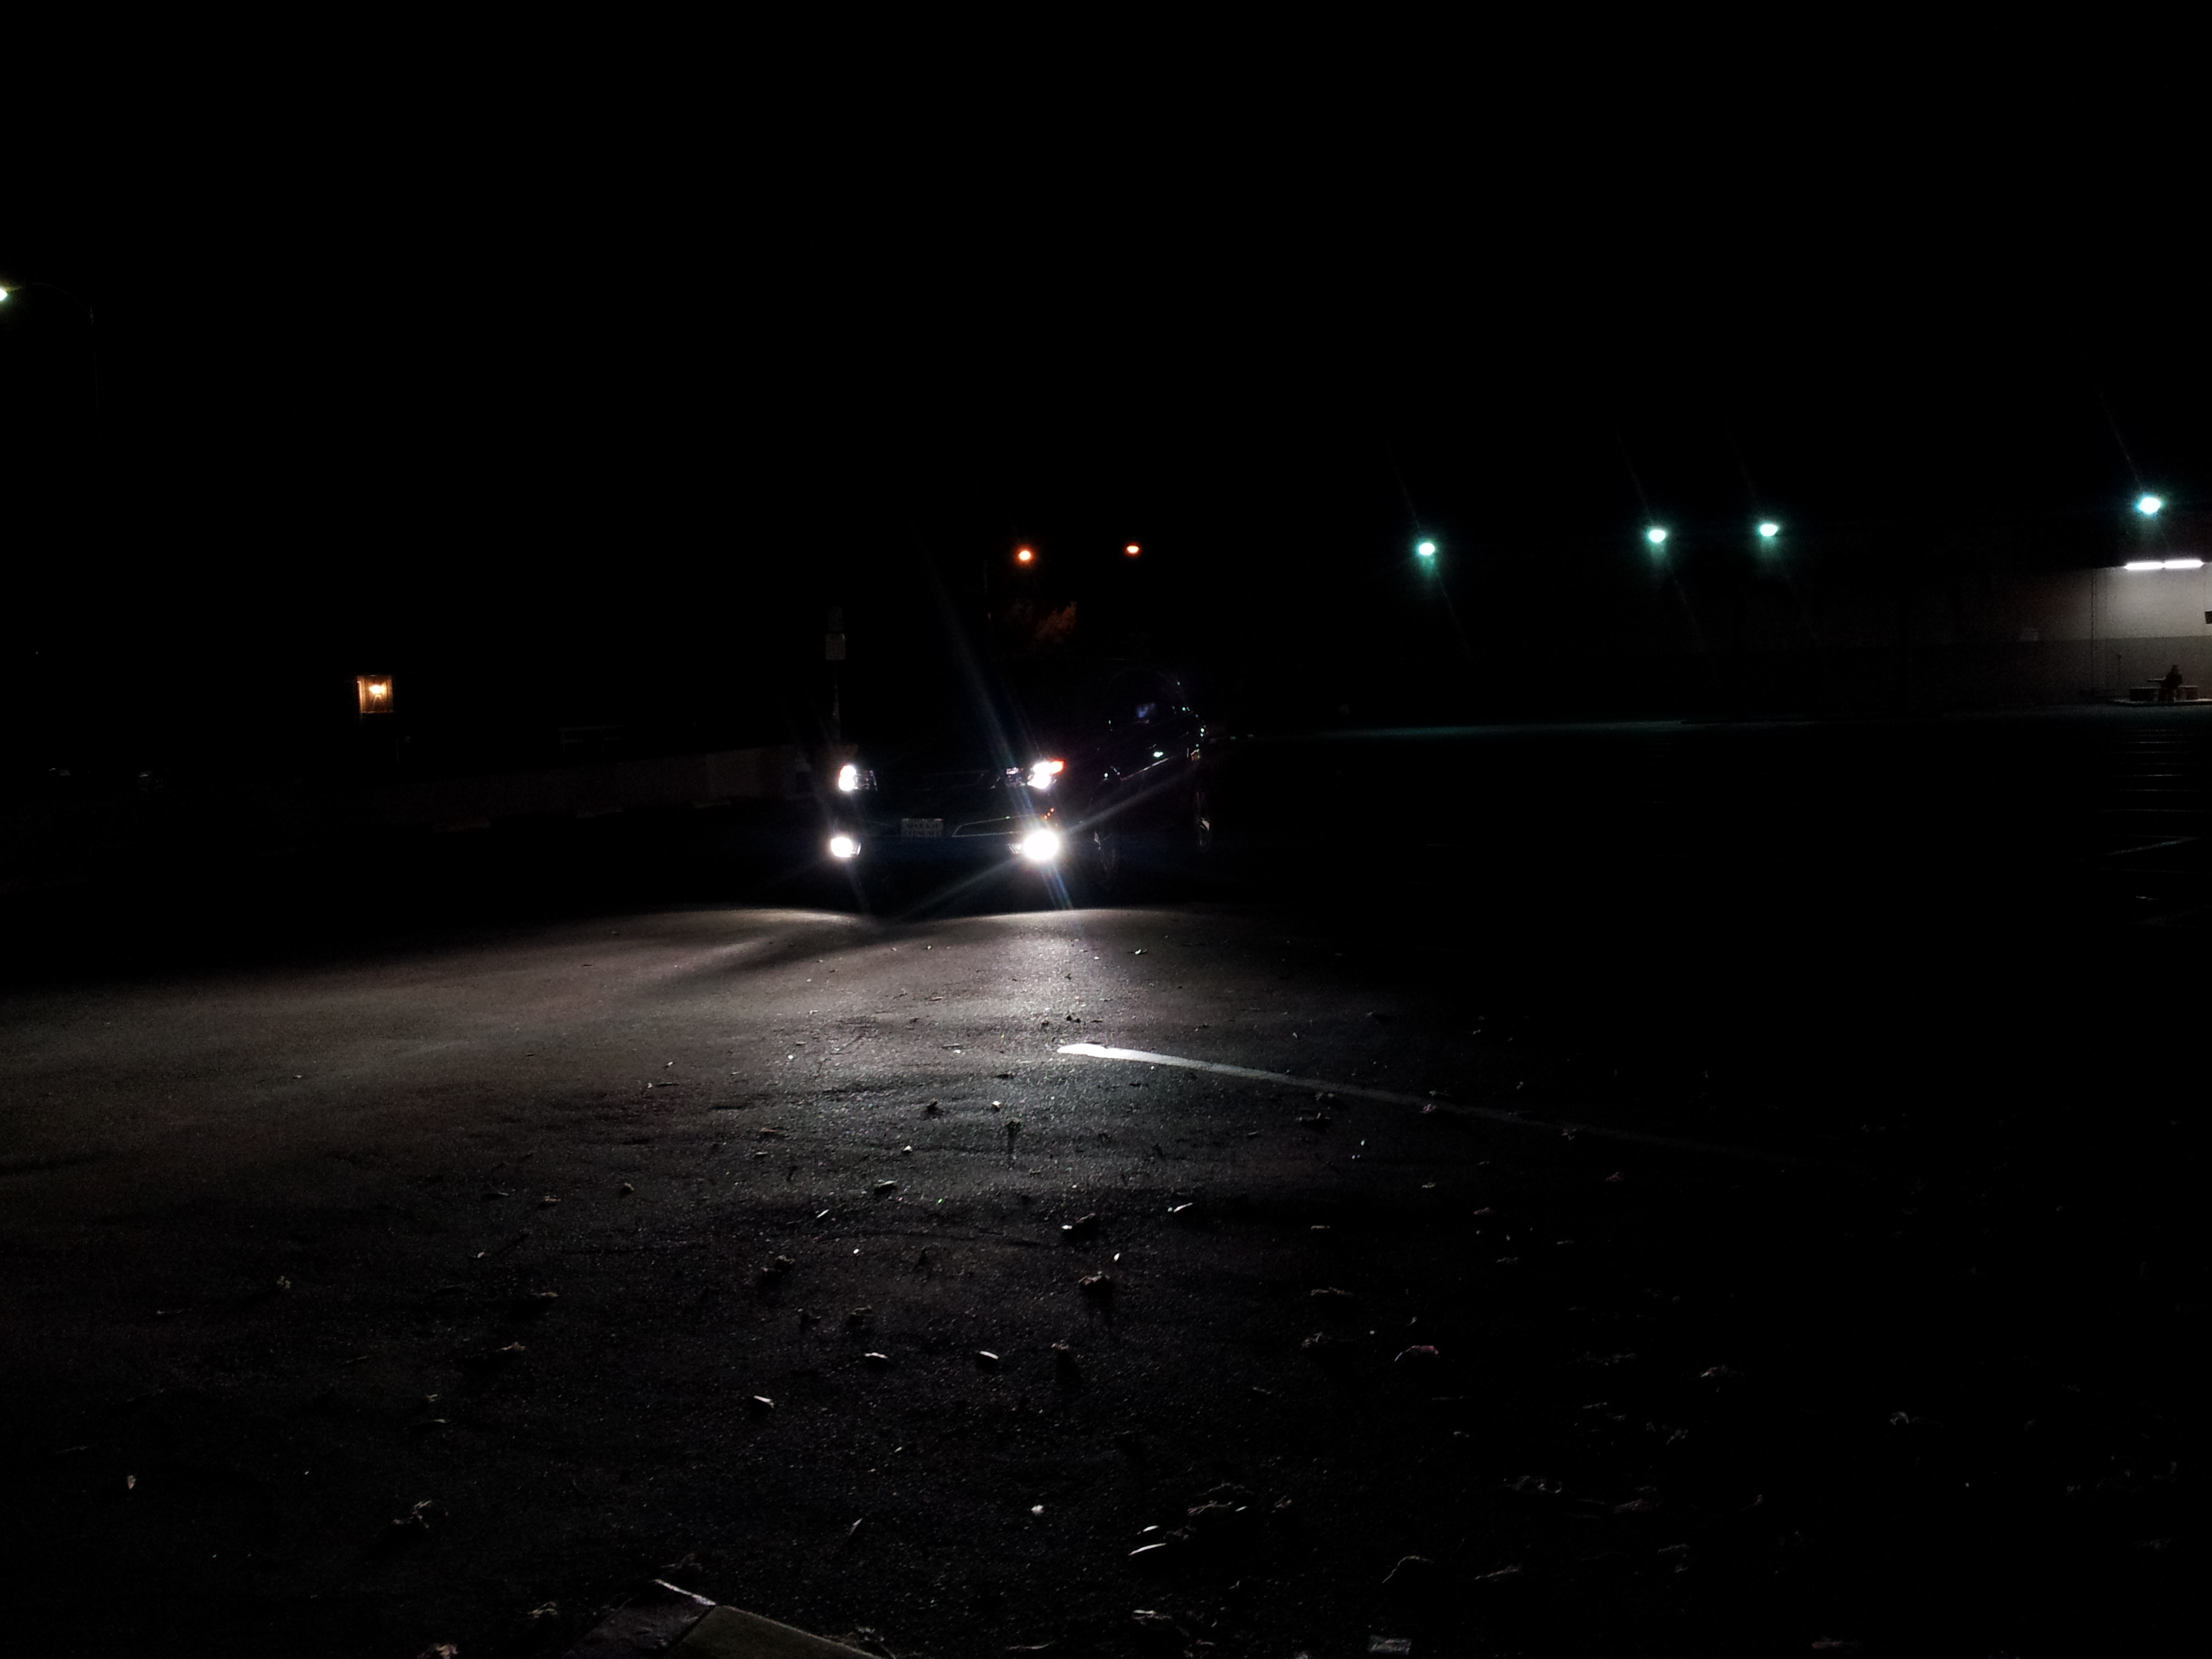 HID Fog/LED DRL Installed - PICS-20121025_214540.jpg